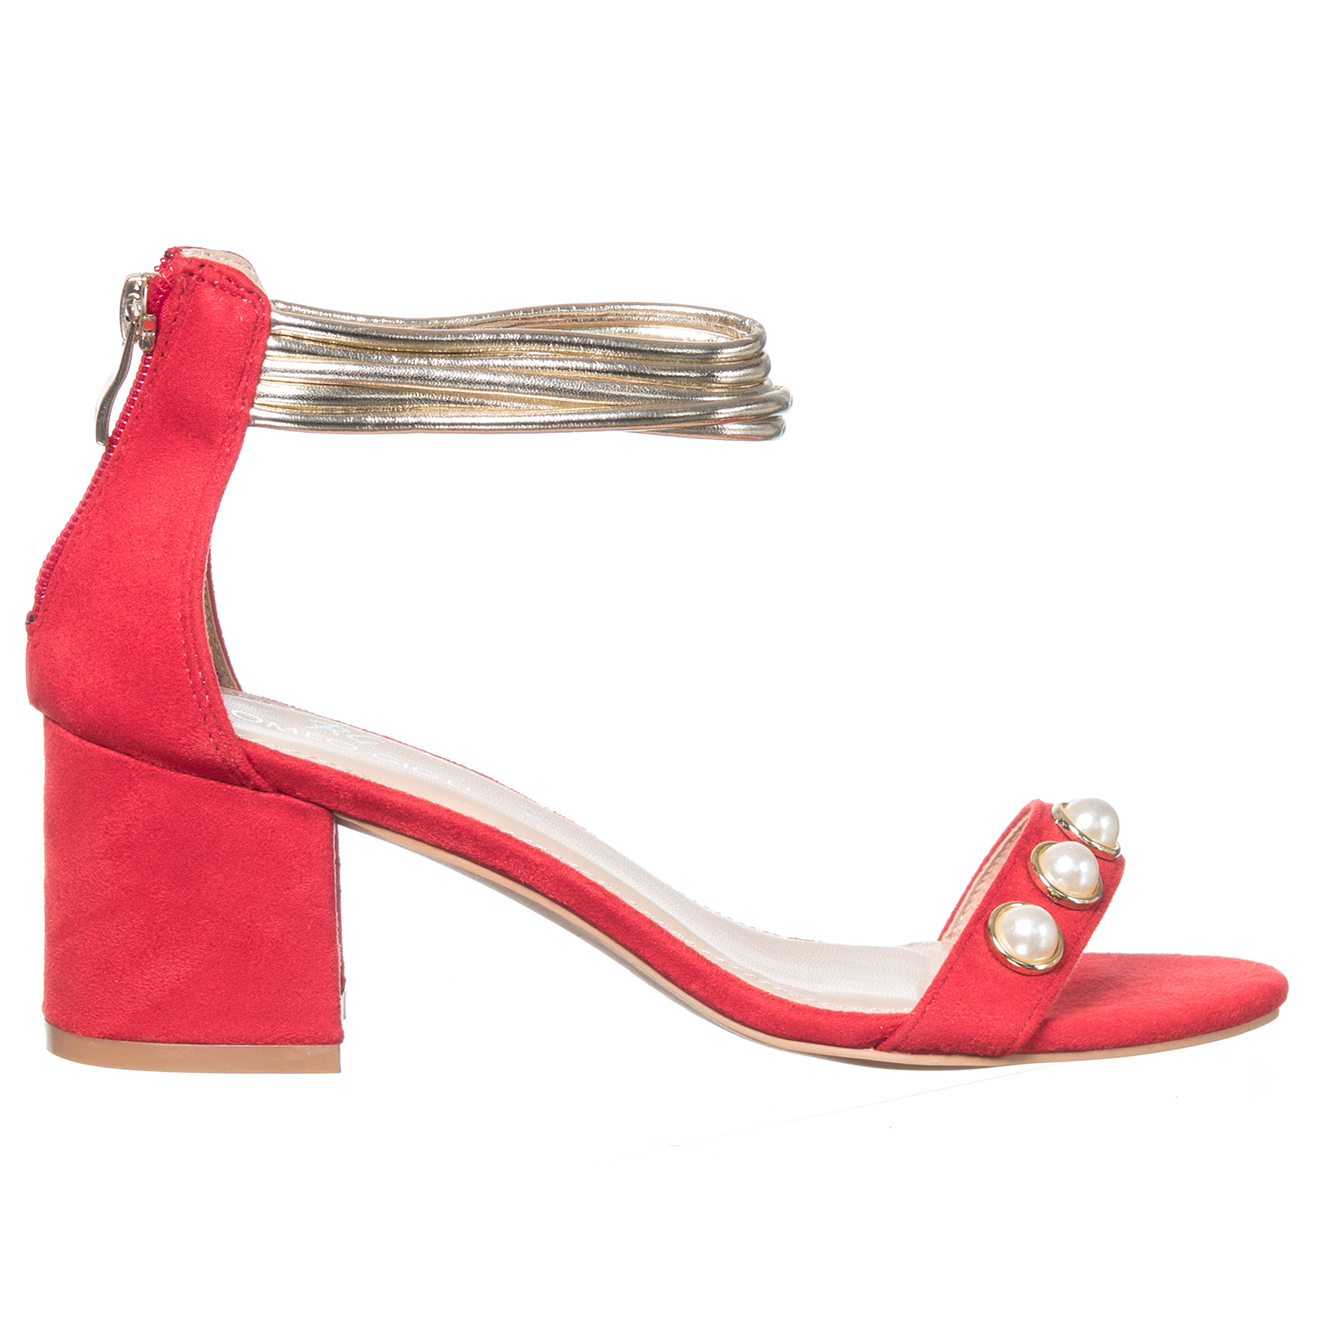 Sandales Lucia rouges - Talon 6 cm